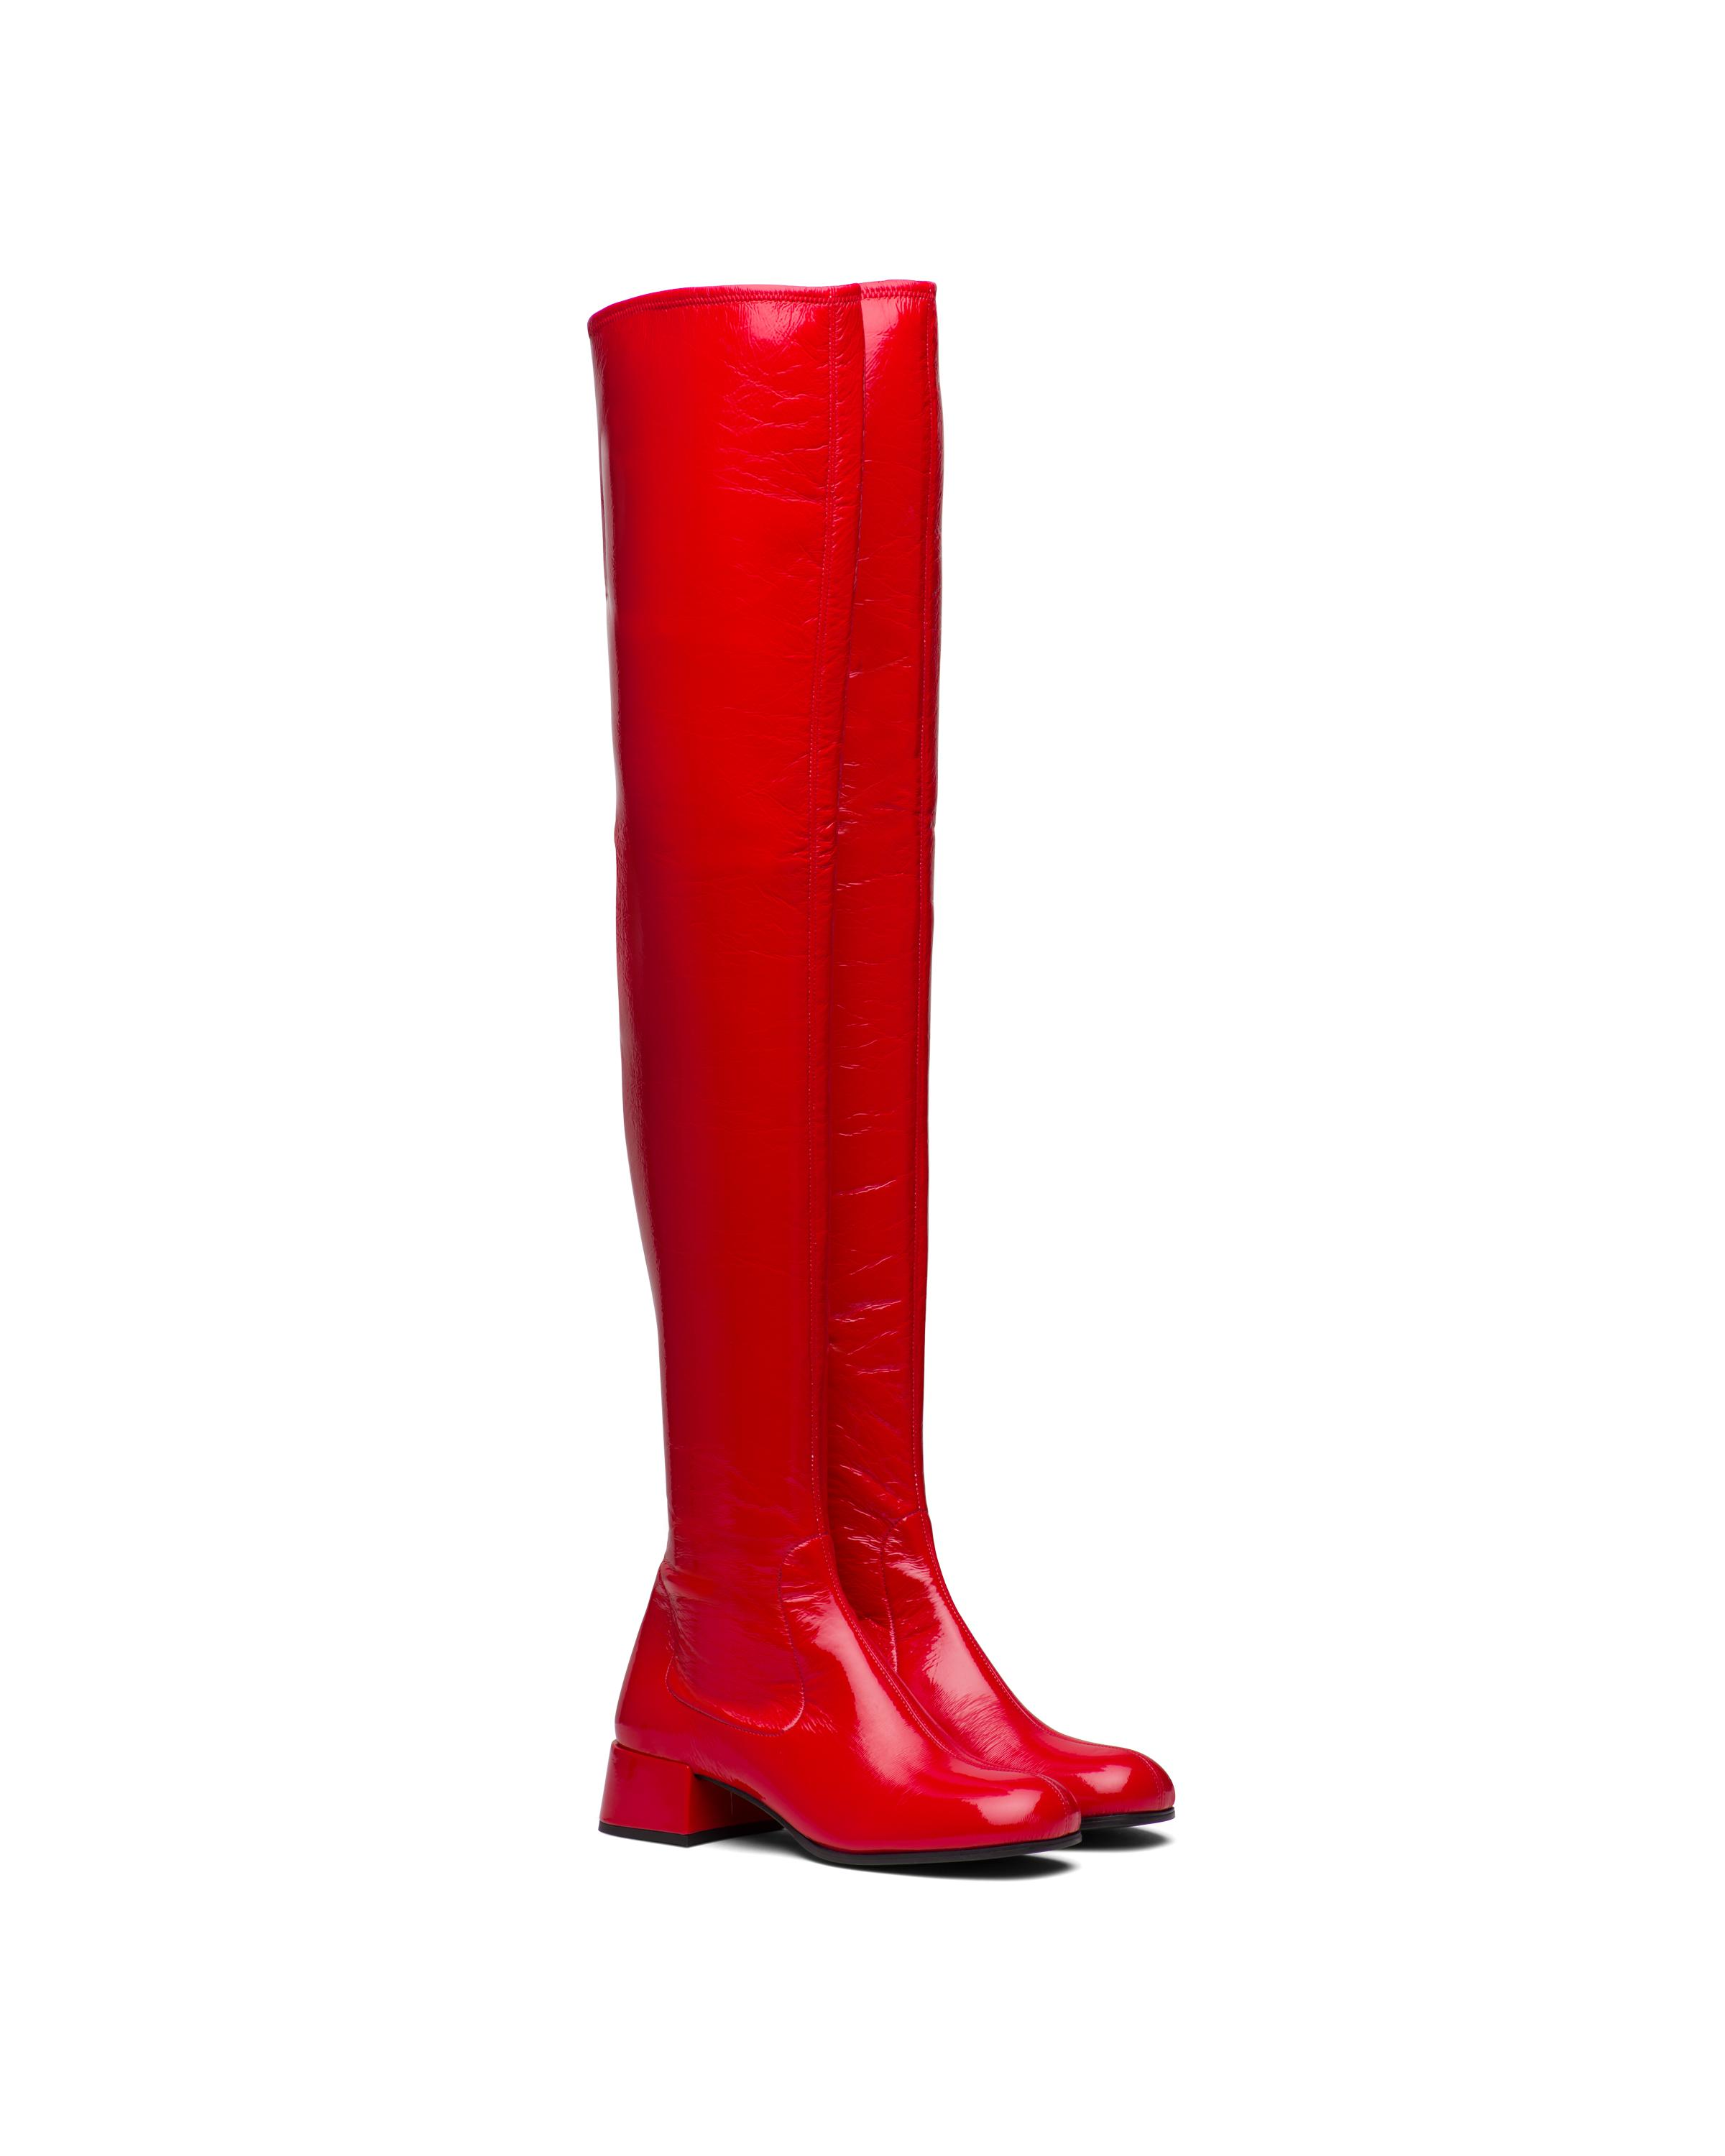 Technical Patent Leather Boots Women Red 4